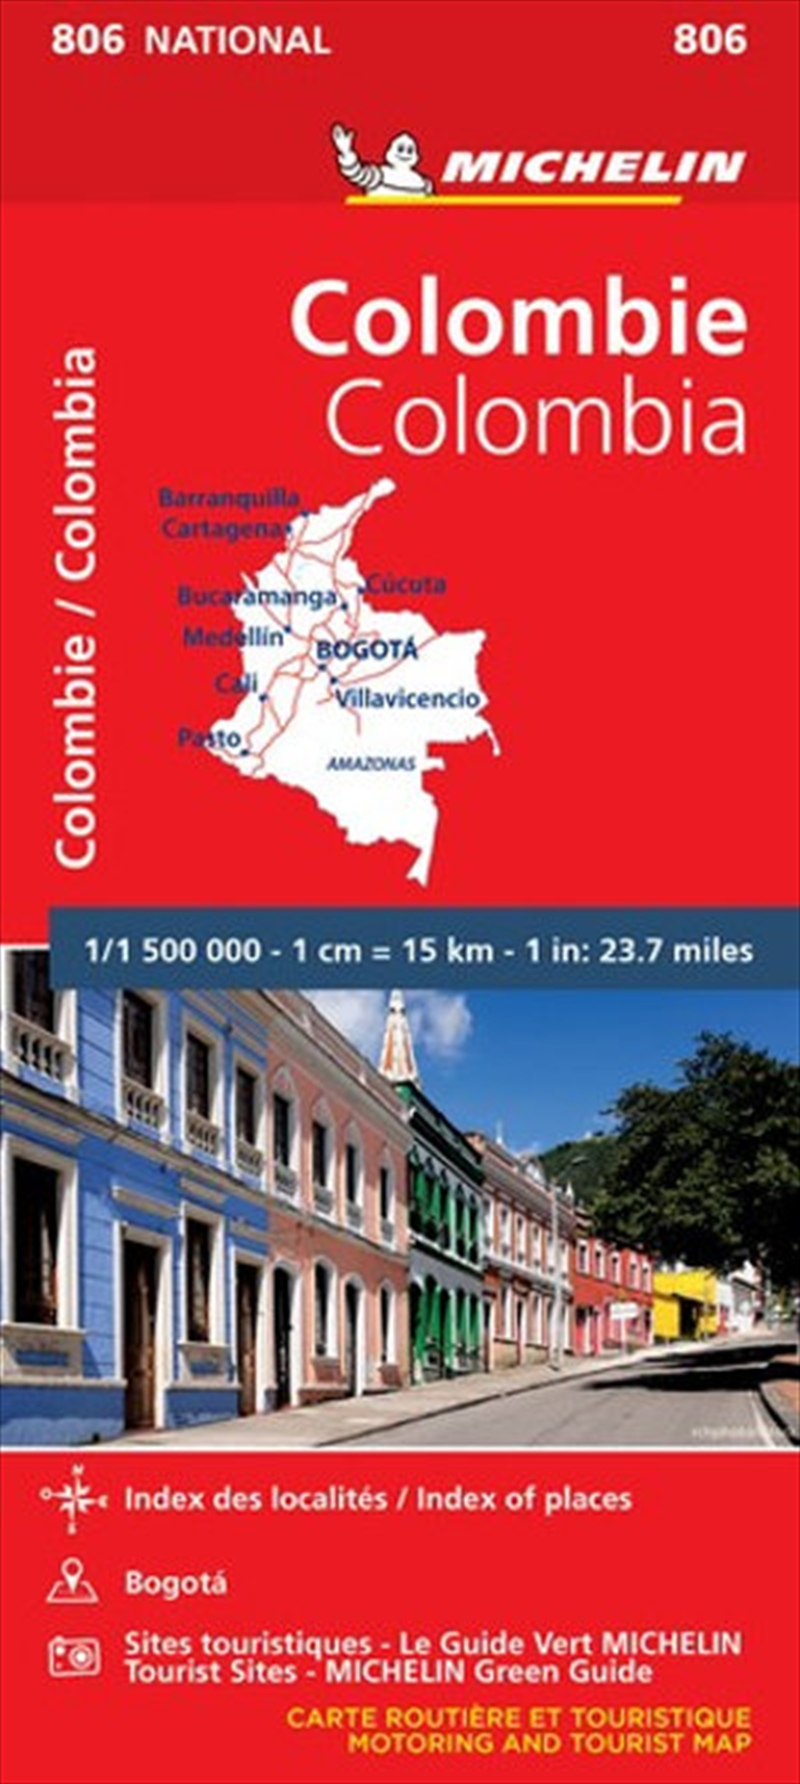 Colombia Michelin National Road Map 806 | Sheet Map